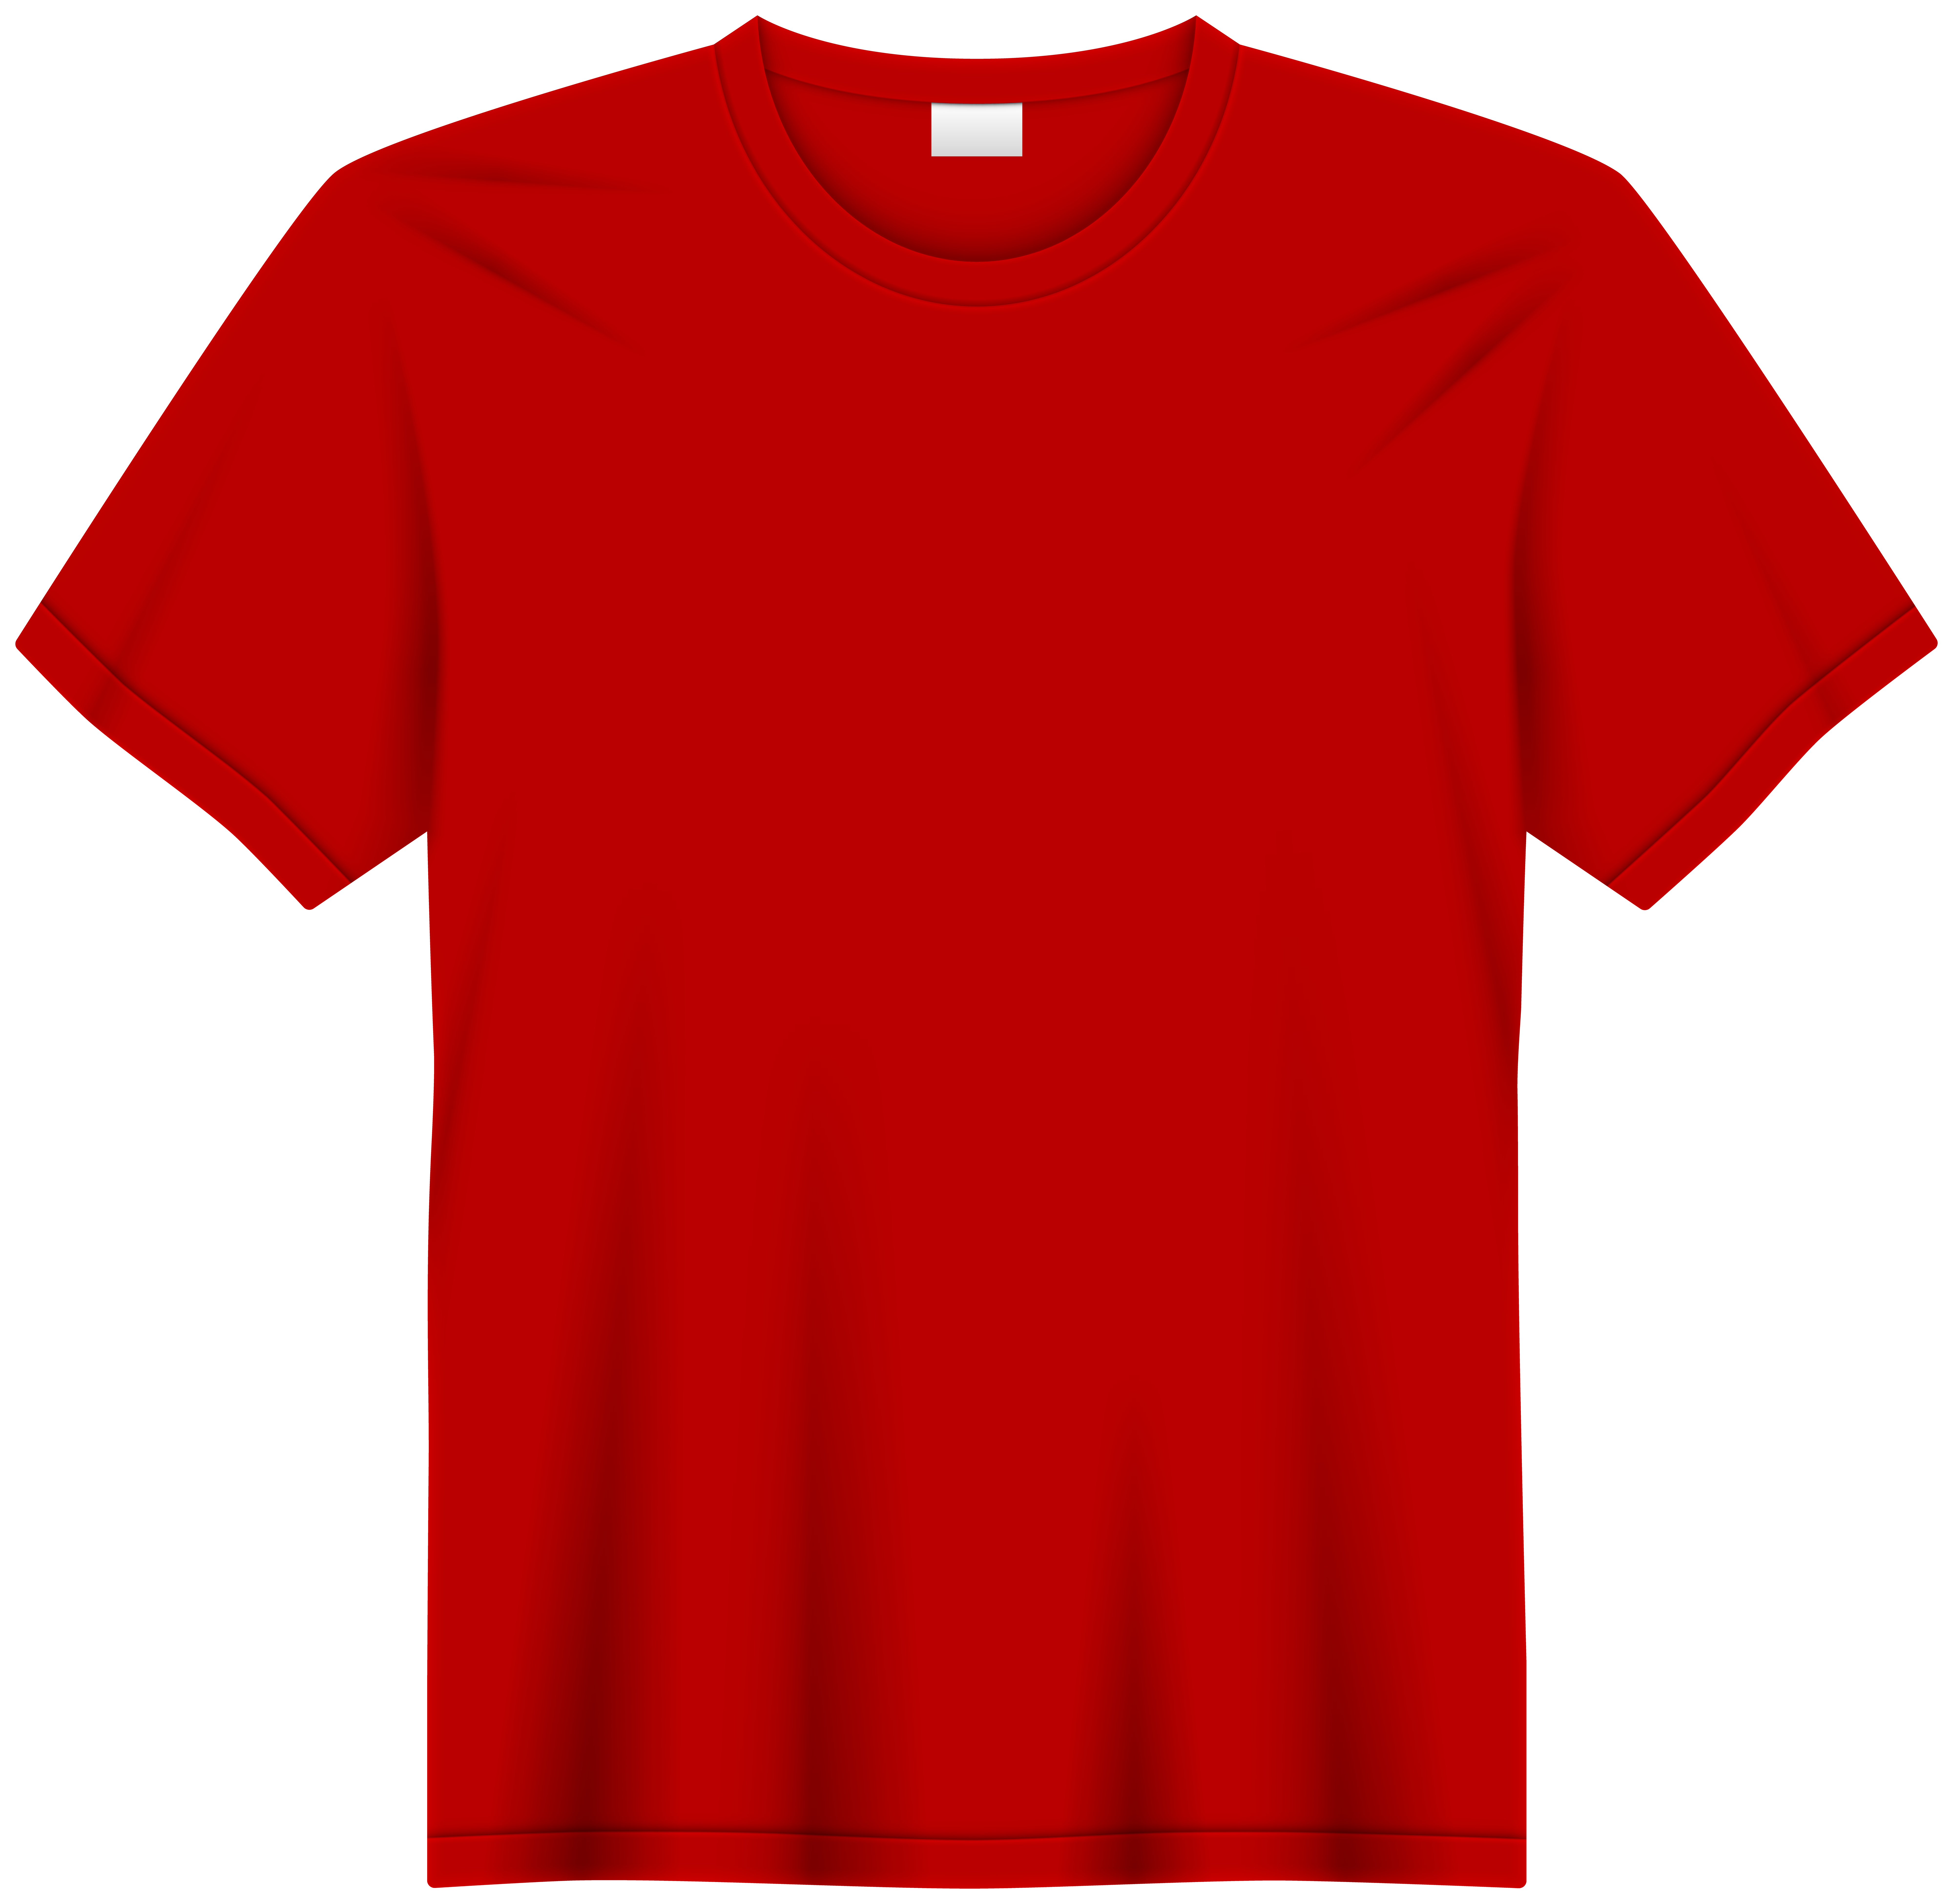 T shirt png transparent clipart clip art royalty free library Red T Shirt PNG Clip Art - Best WEB Clipart clip art royalty free library